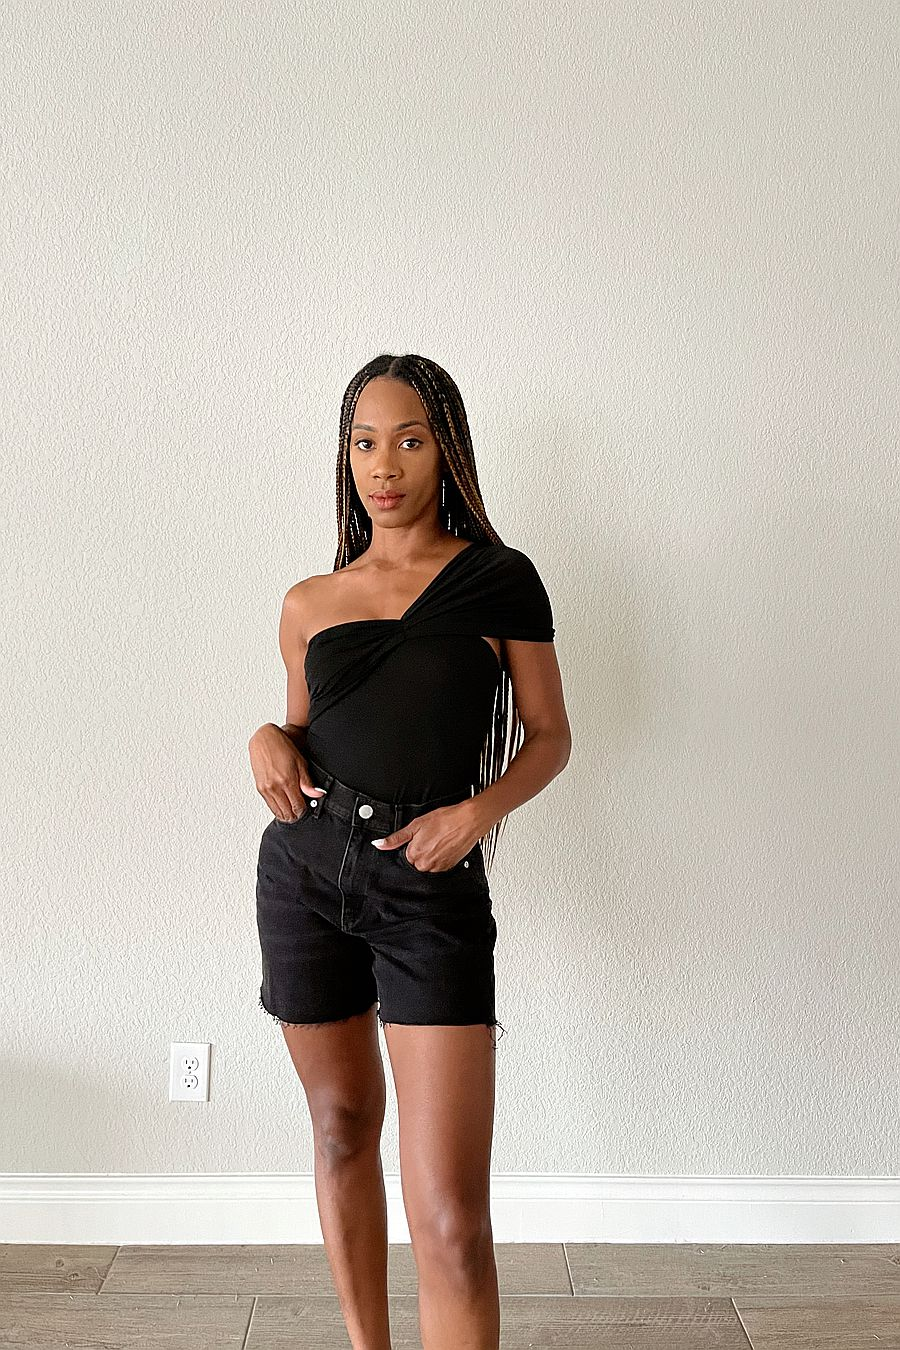 The Line by K Kyo Tube Top - Black